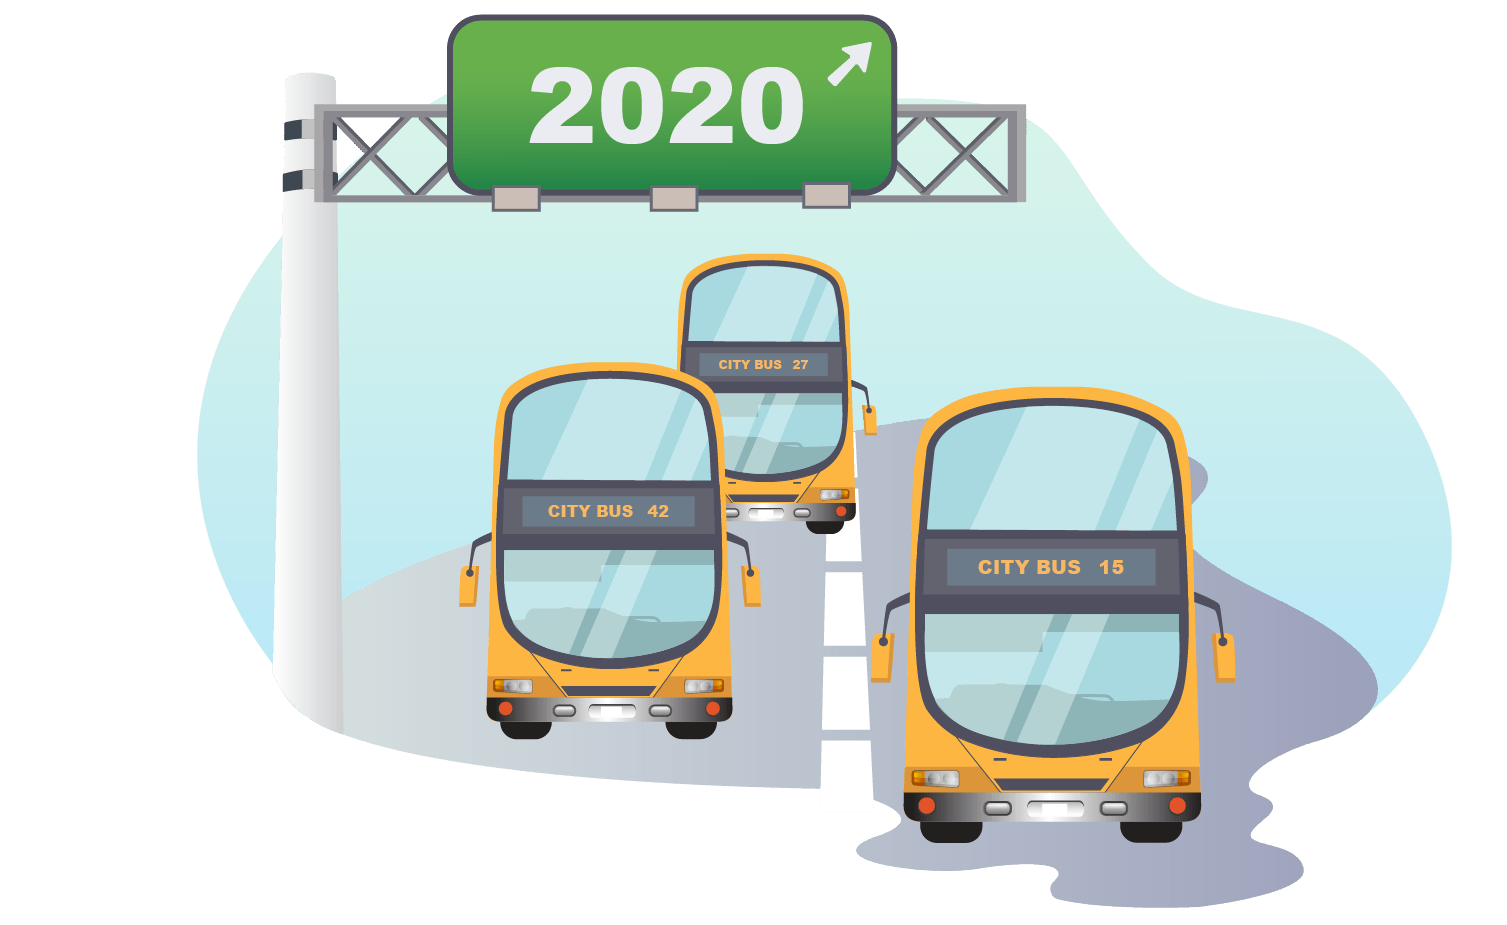 so-will-year-2020-be-the-year-of-the-bus-23-23